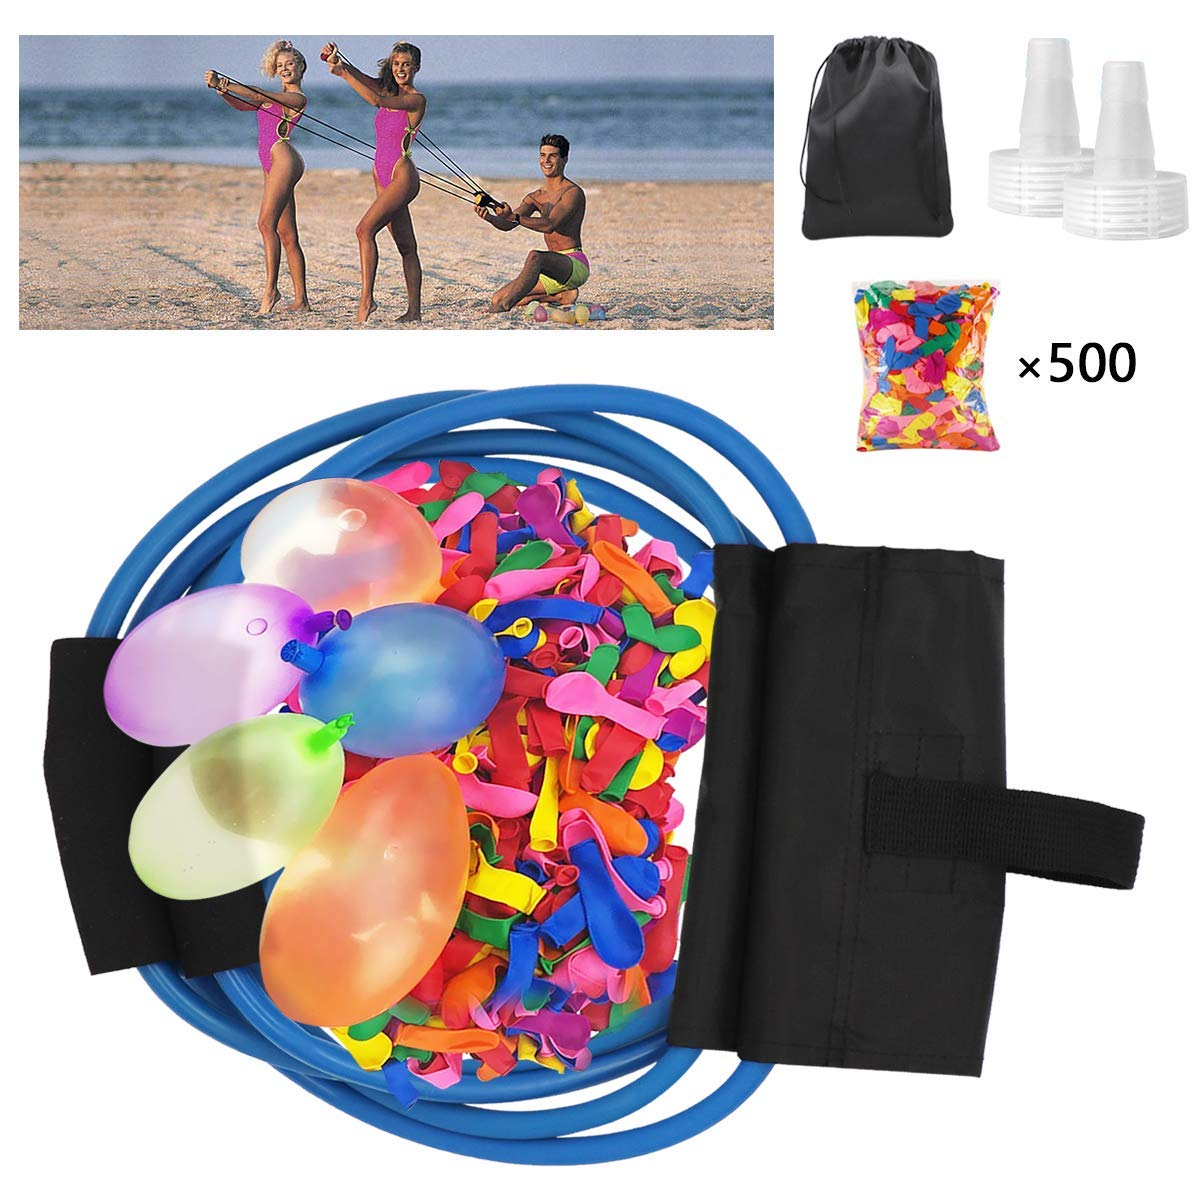 POKONBOY Water Balloon Launcher with 500 Water Balloons , 500 Yards Water Balloon Slingshot / Cannon / Launcher with 2 Refill Kits Fight Pool Party Toy, 3 Person Giant Angry Birds Summer Beach Games by POKONBOY